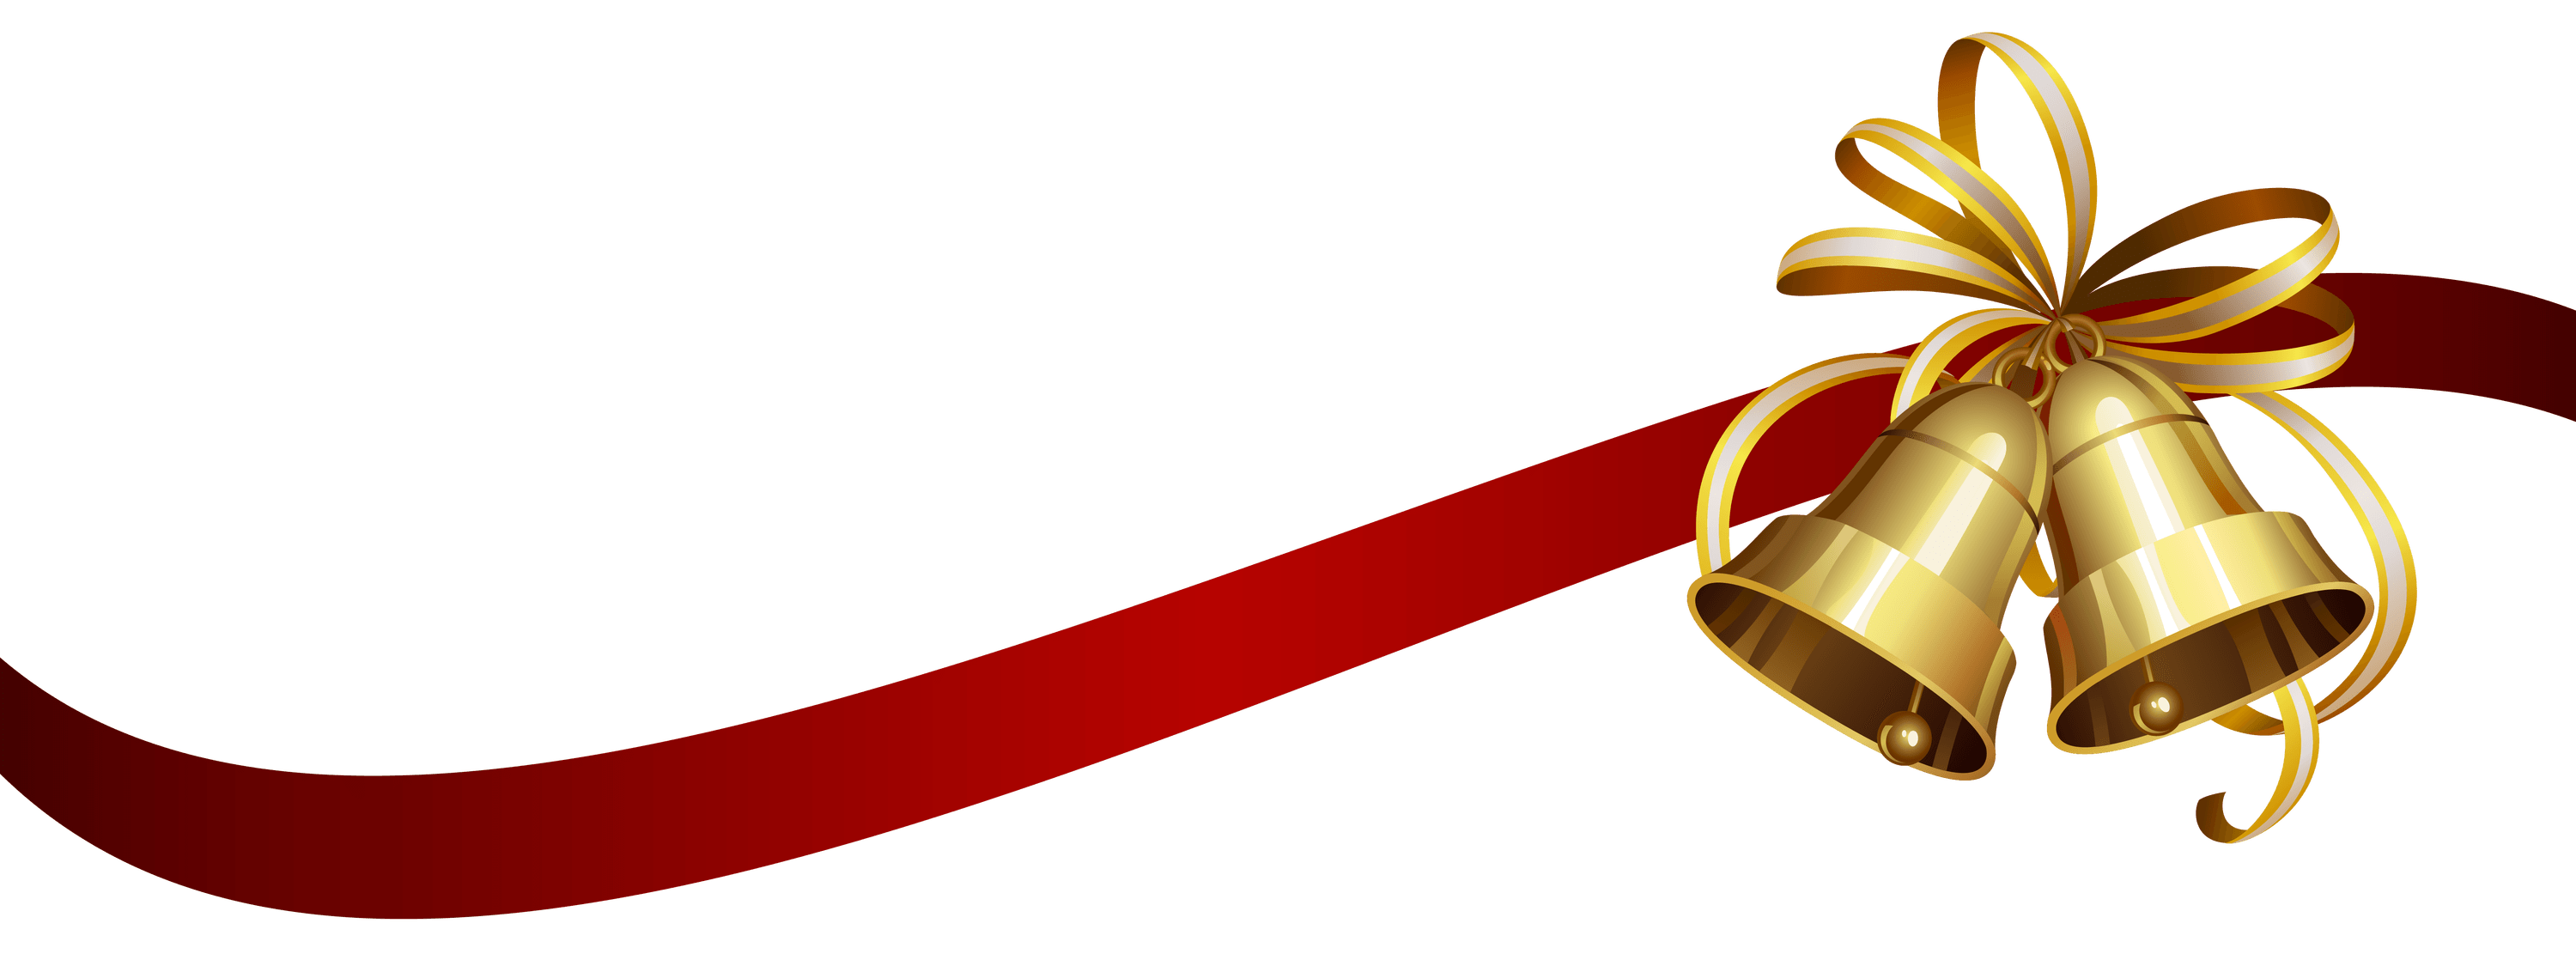 Christmas Ribbon and Bells transparent PNG.